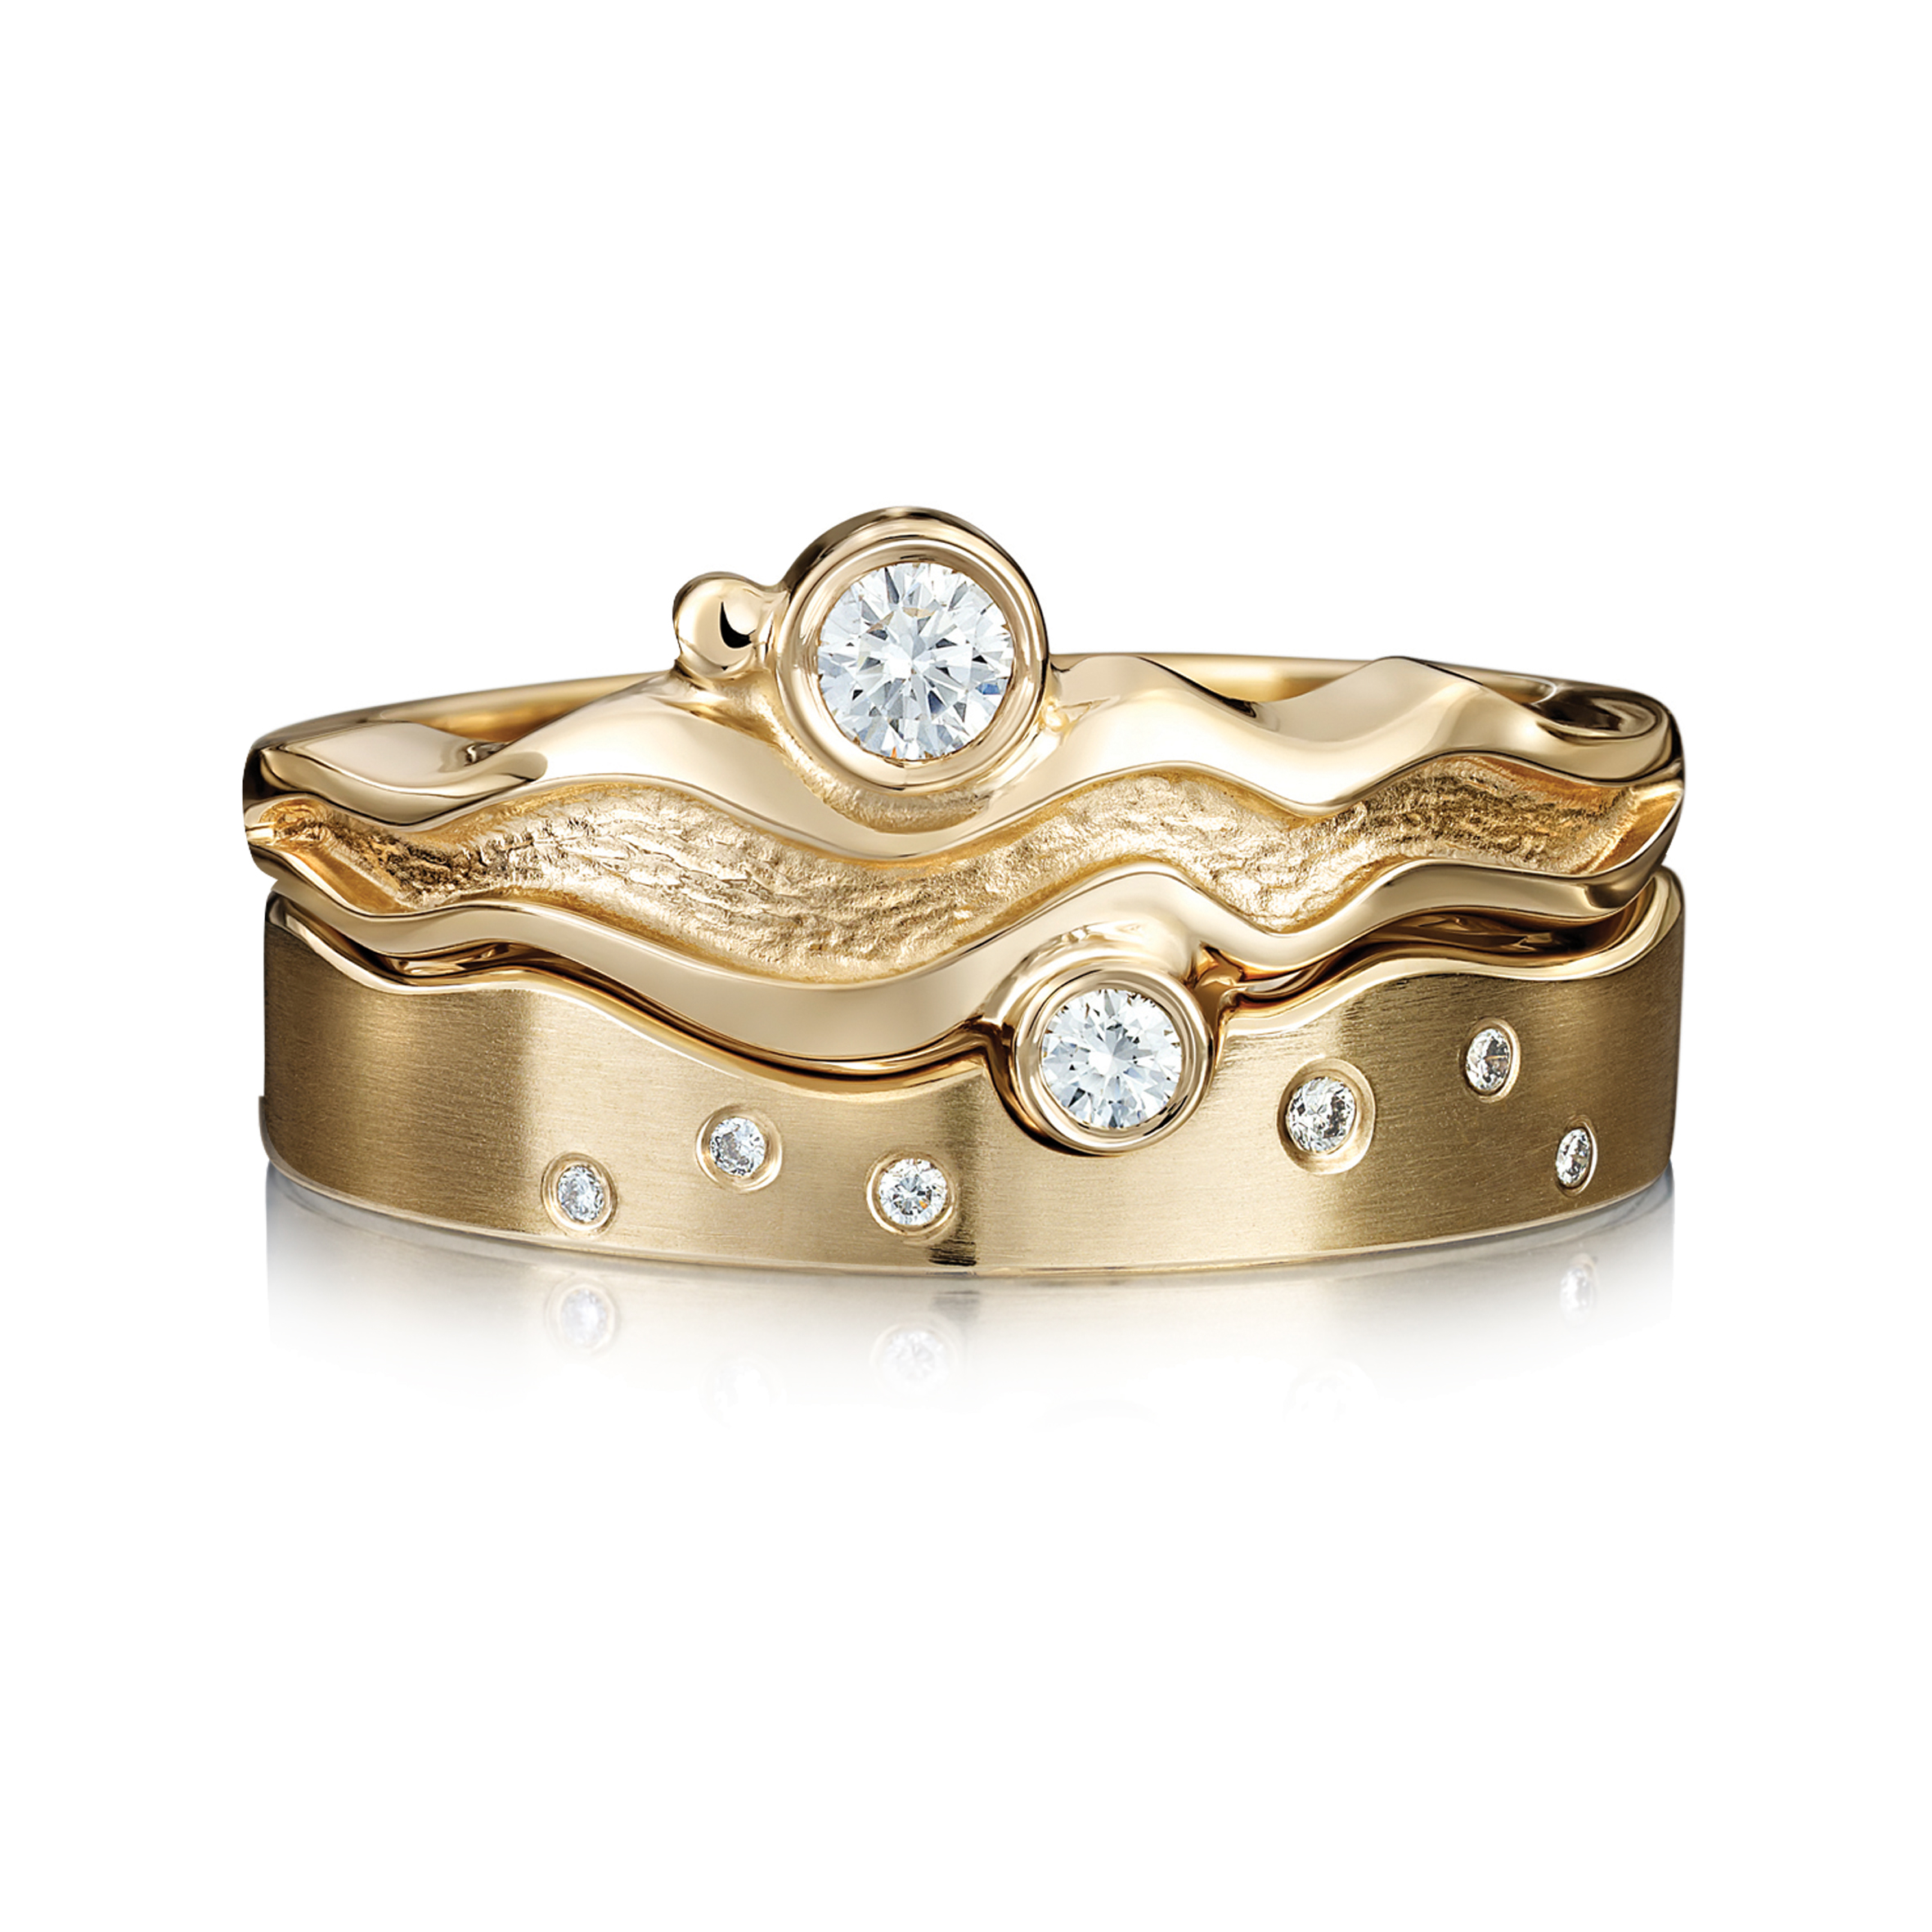 rings ring rome jewels valentina plot product catalog giovanelli u contemporary en category